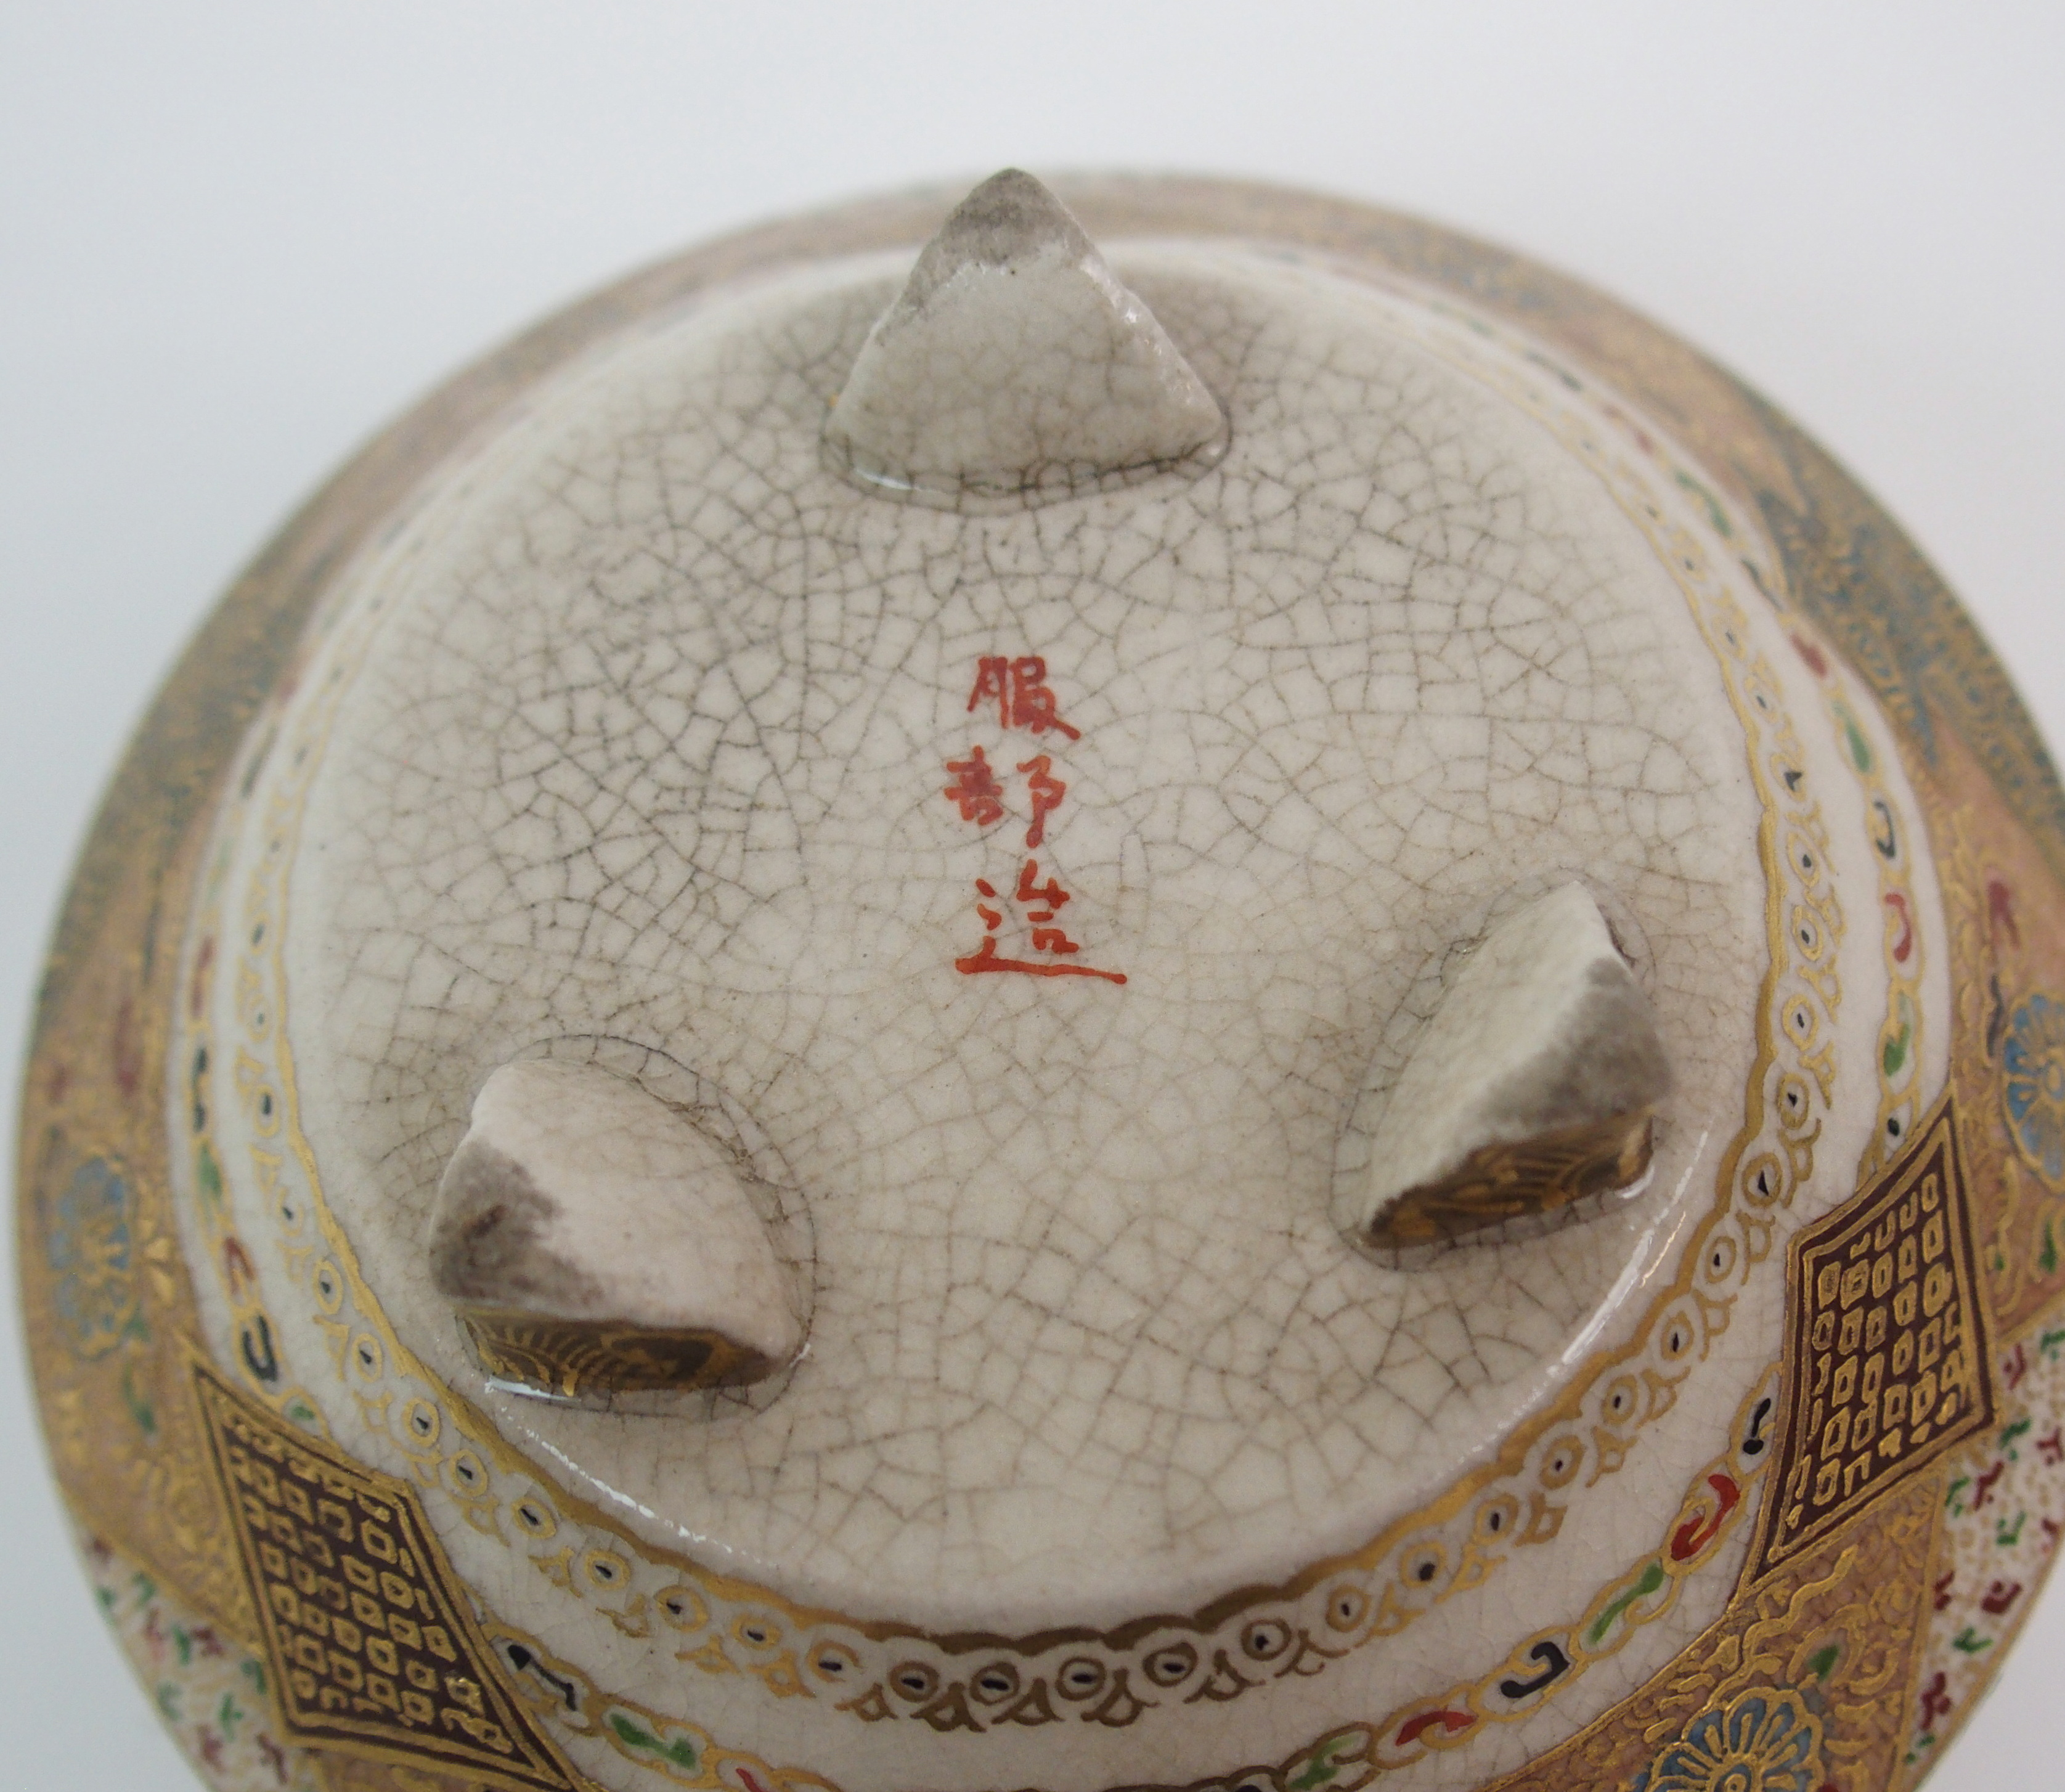 Lot 36 - A SATSUMA KORO the pierced cover with shishi finial above panels of figures and ribbon tied handles,